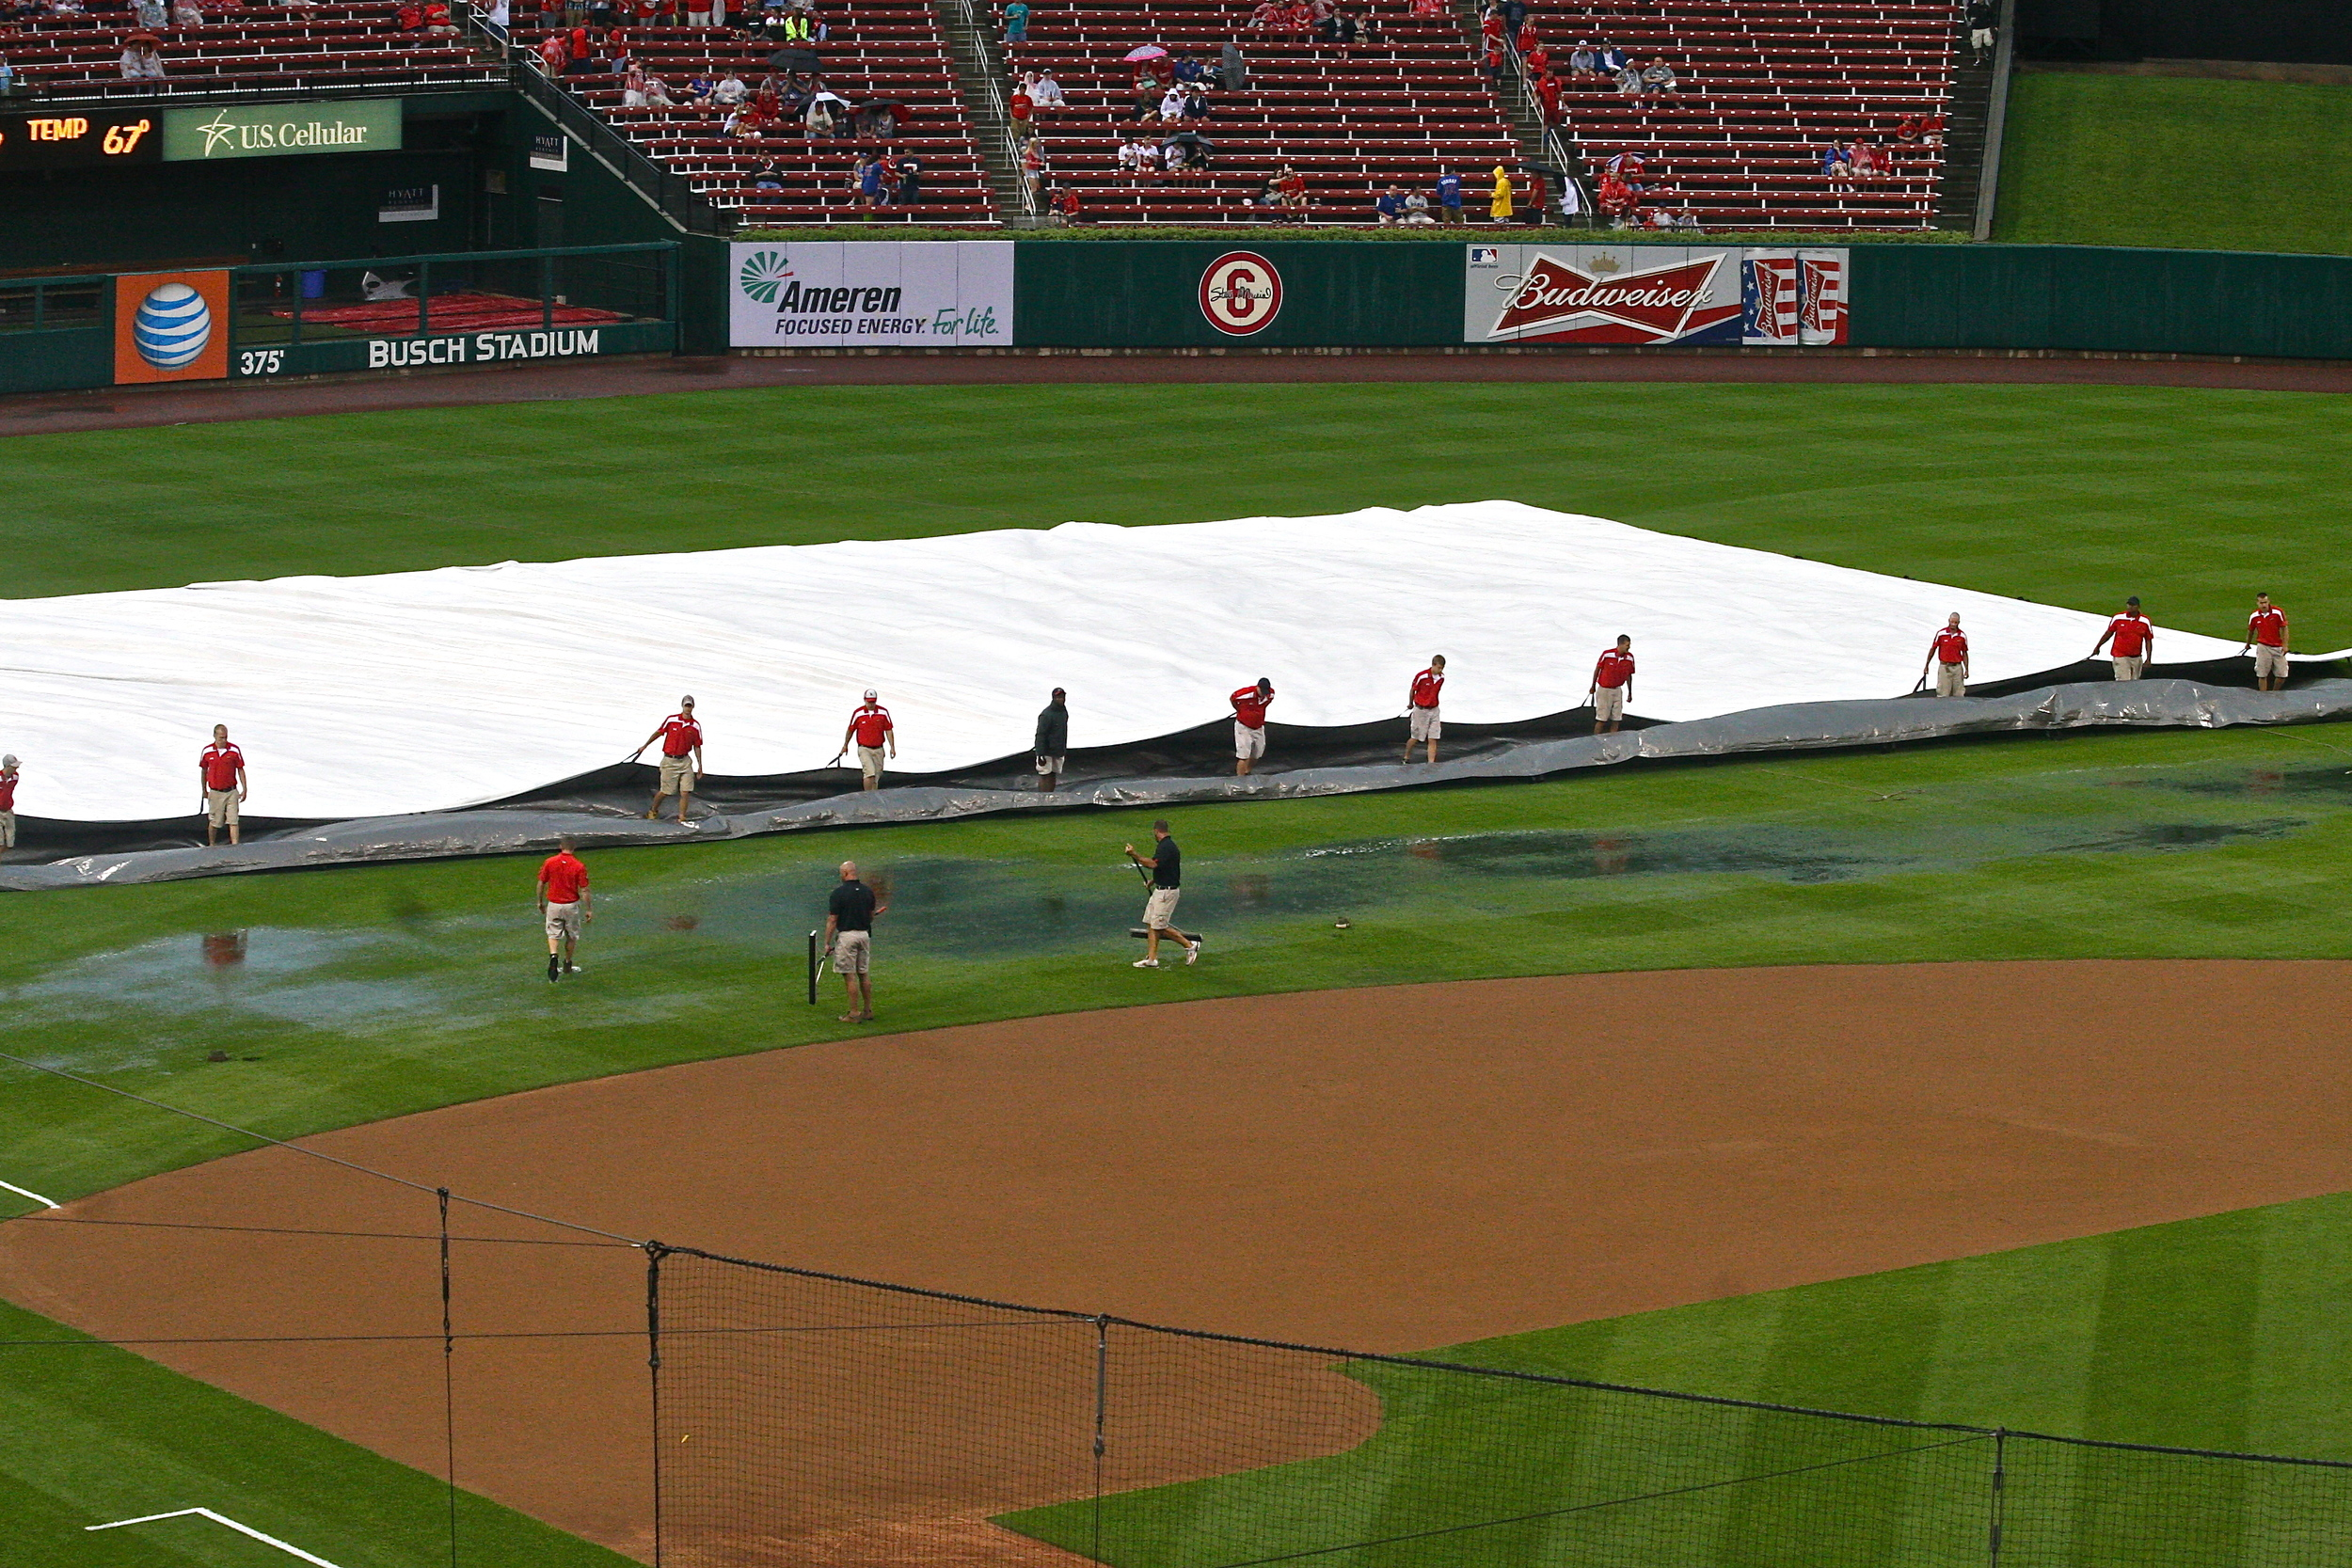 Clearing out the tarp